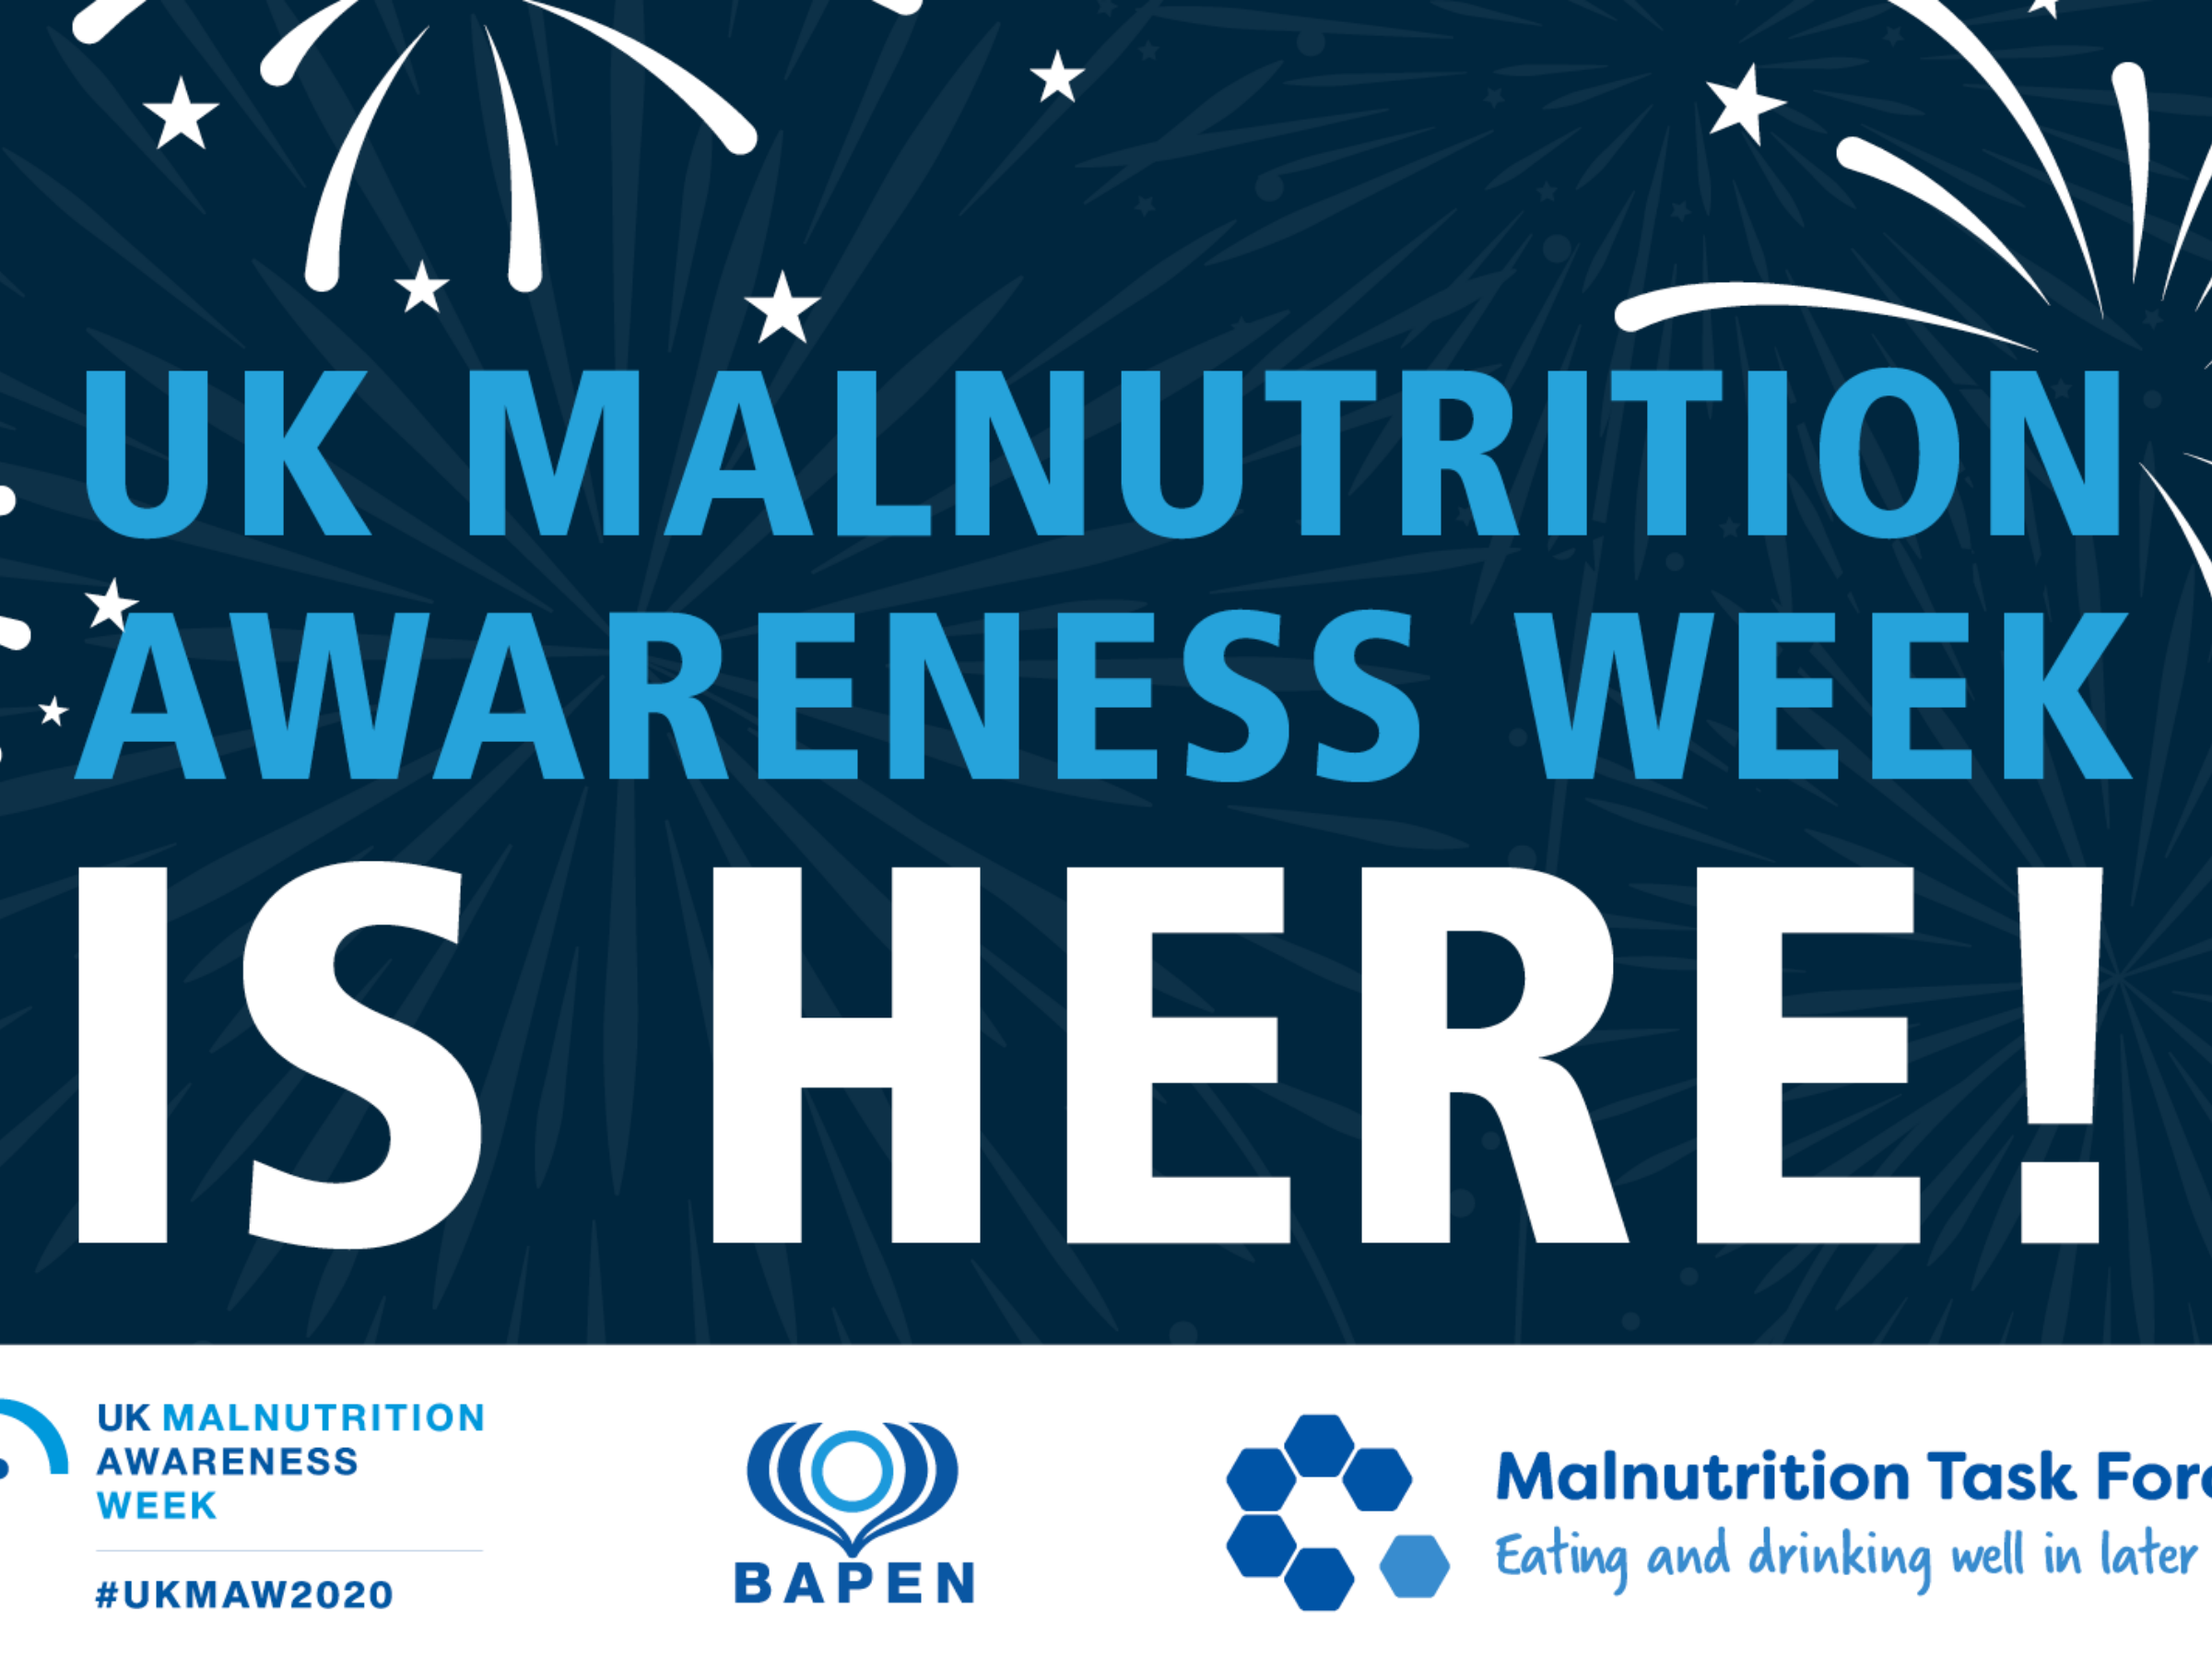 BAPEN UK Malnutrition Awareness Week